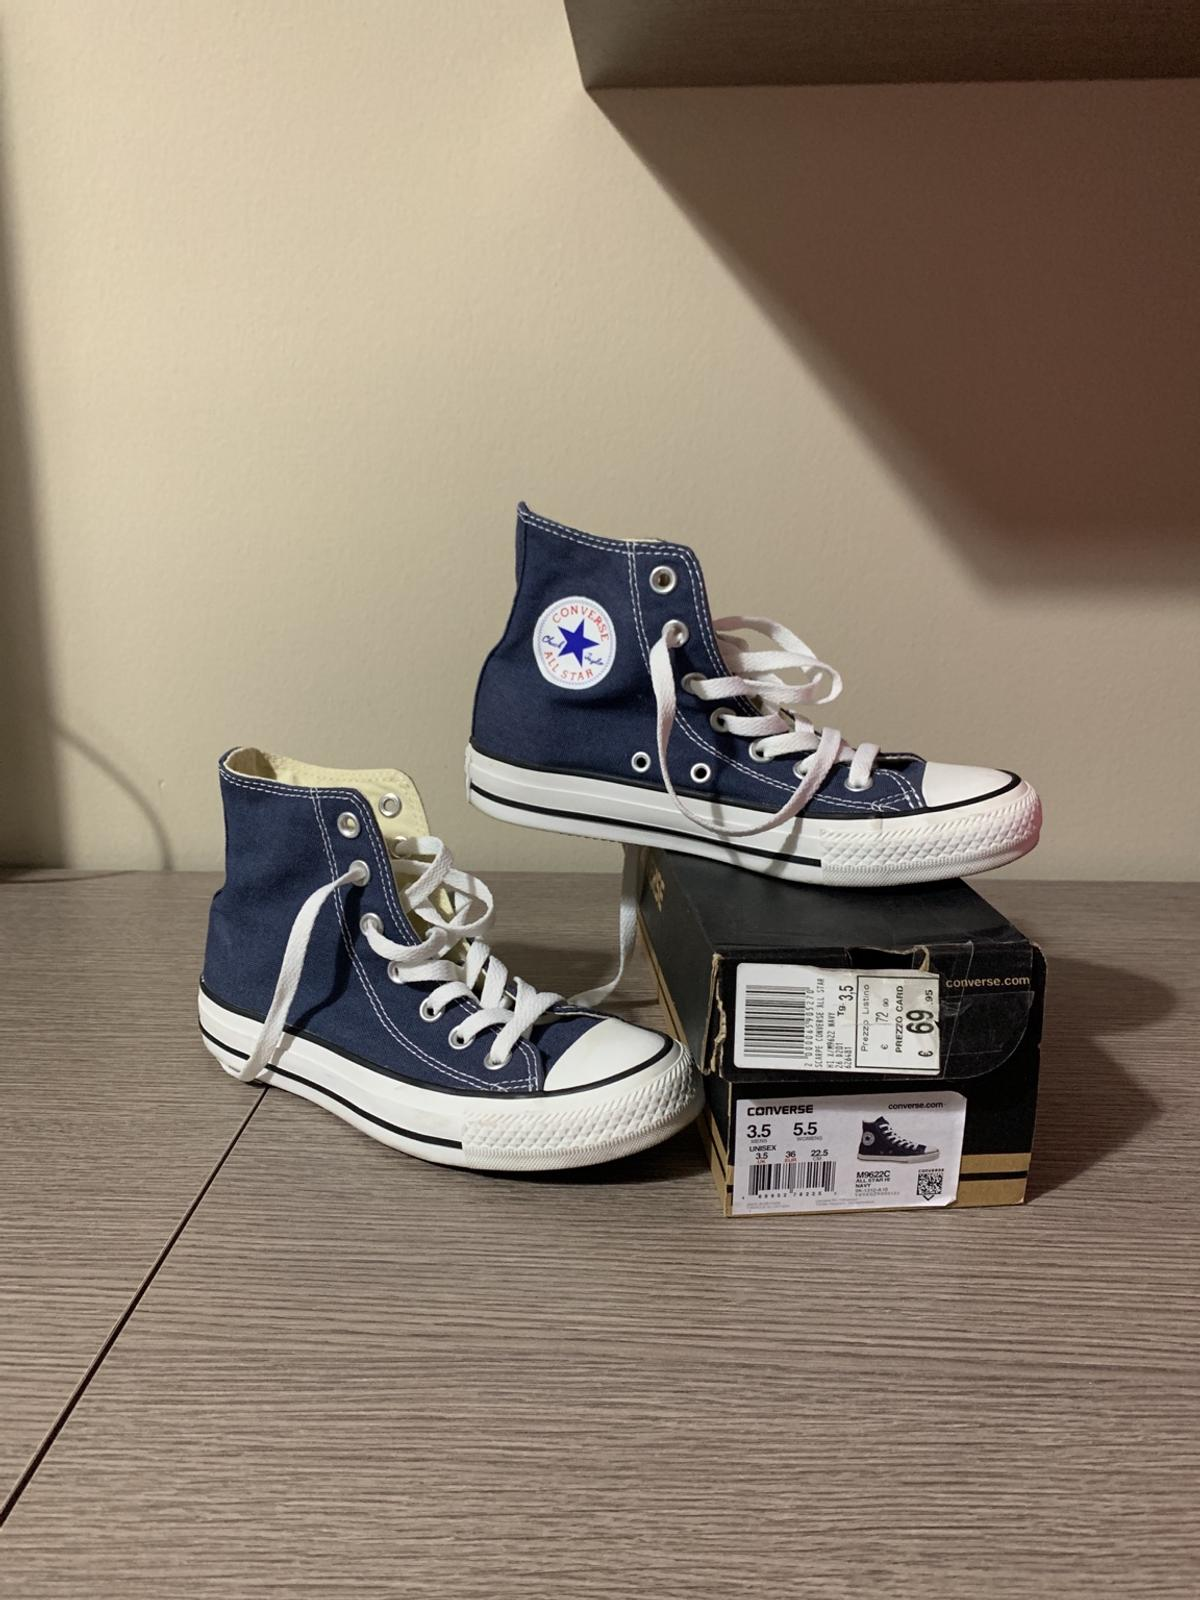 Converse All Star BluNavy donna num 36 in 95126 Catania für